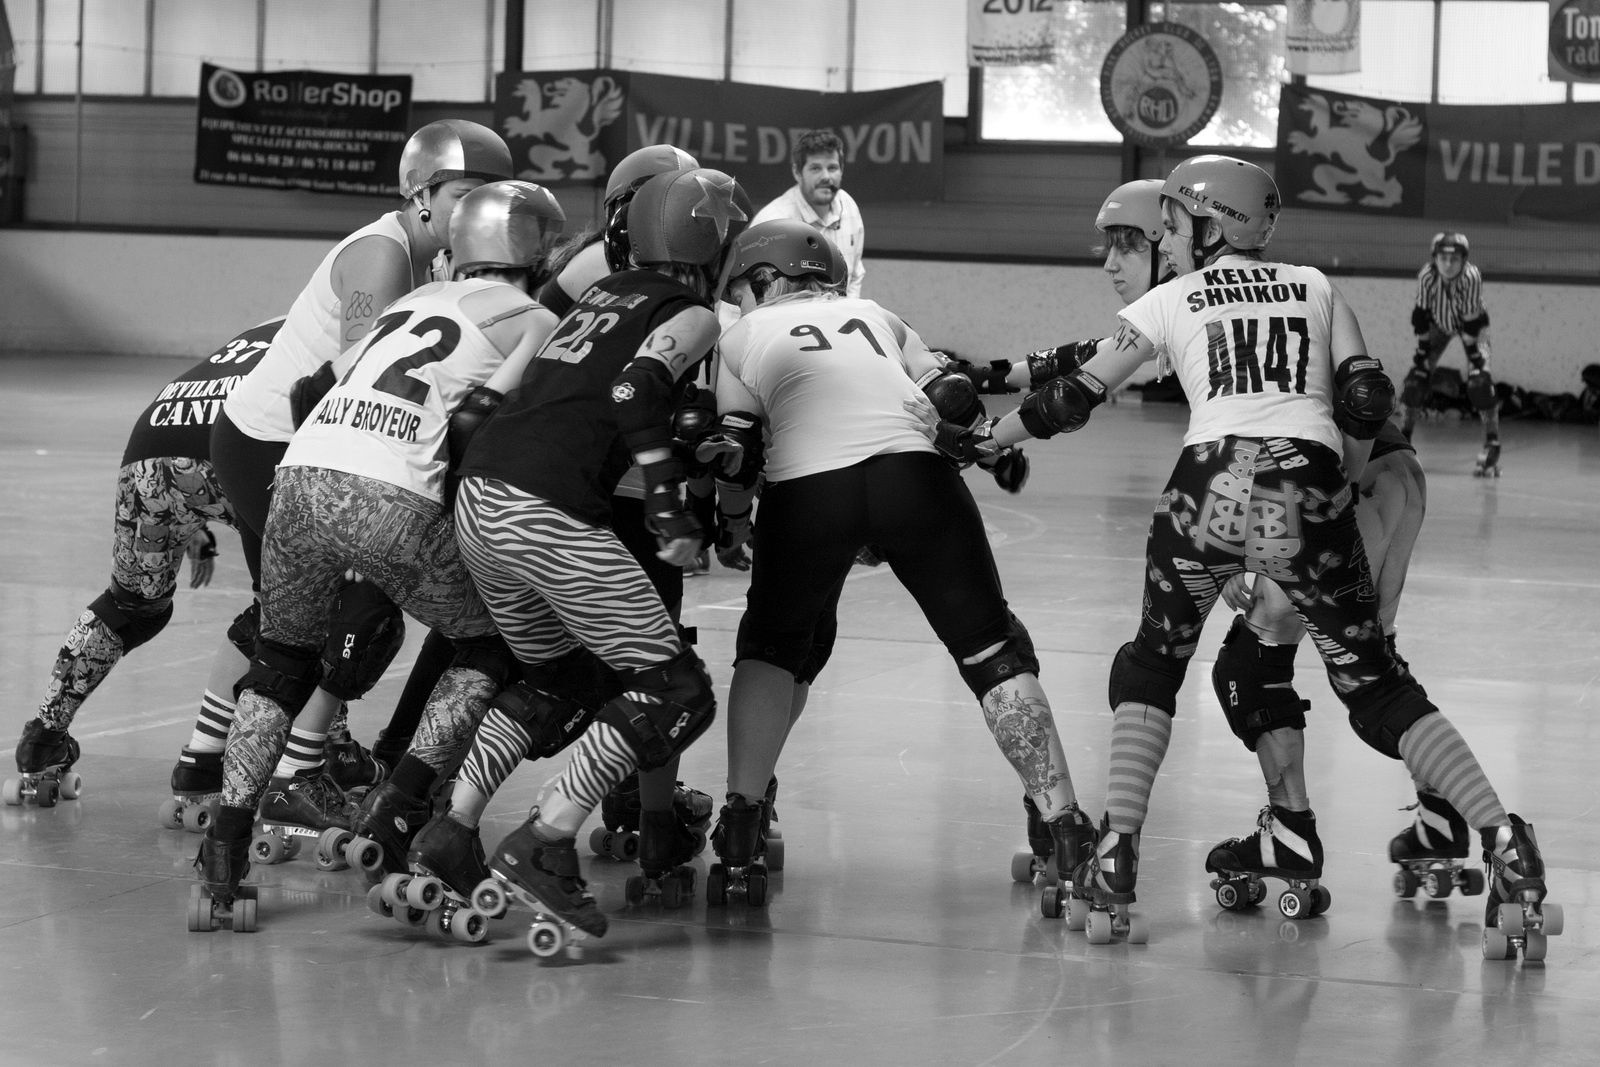 The Big Gang Theory, Roller Derby